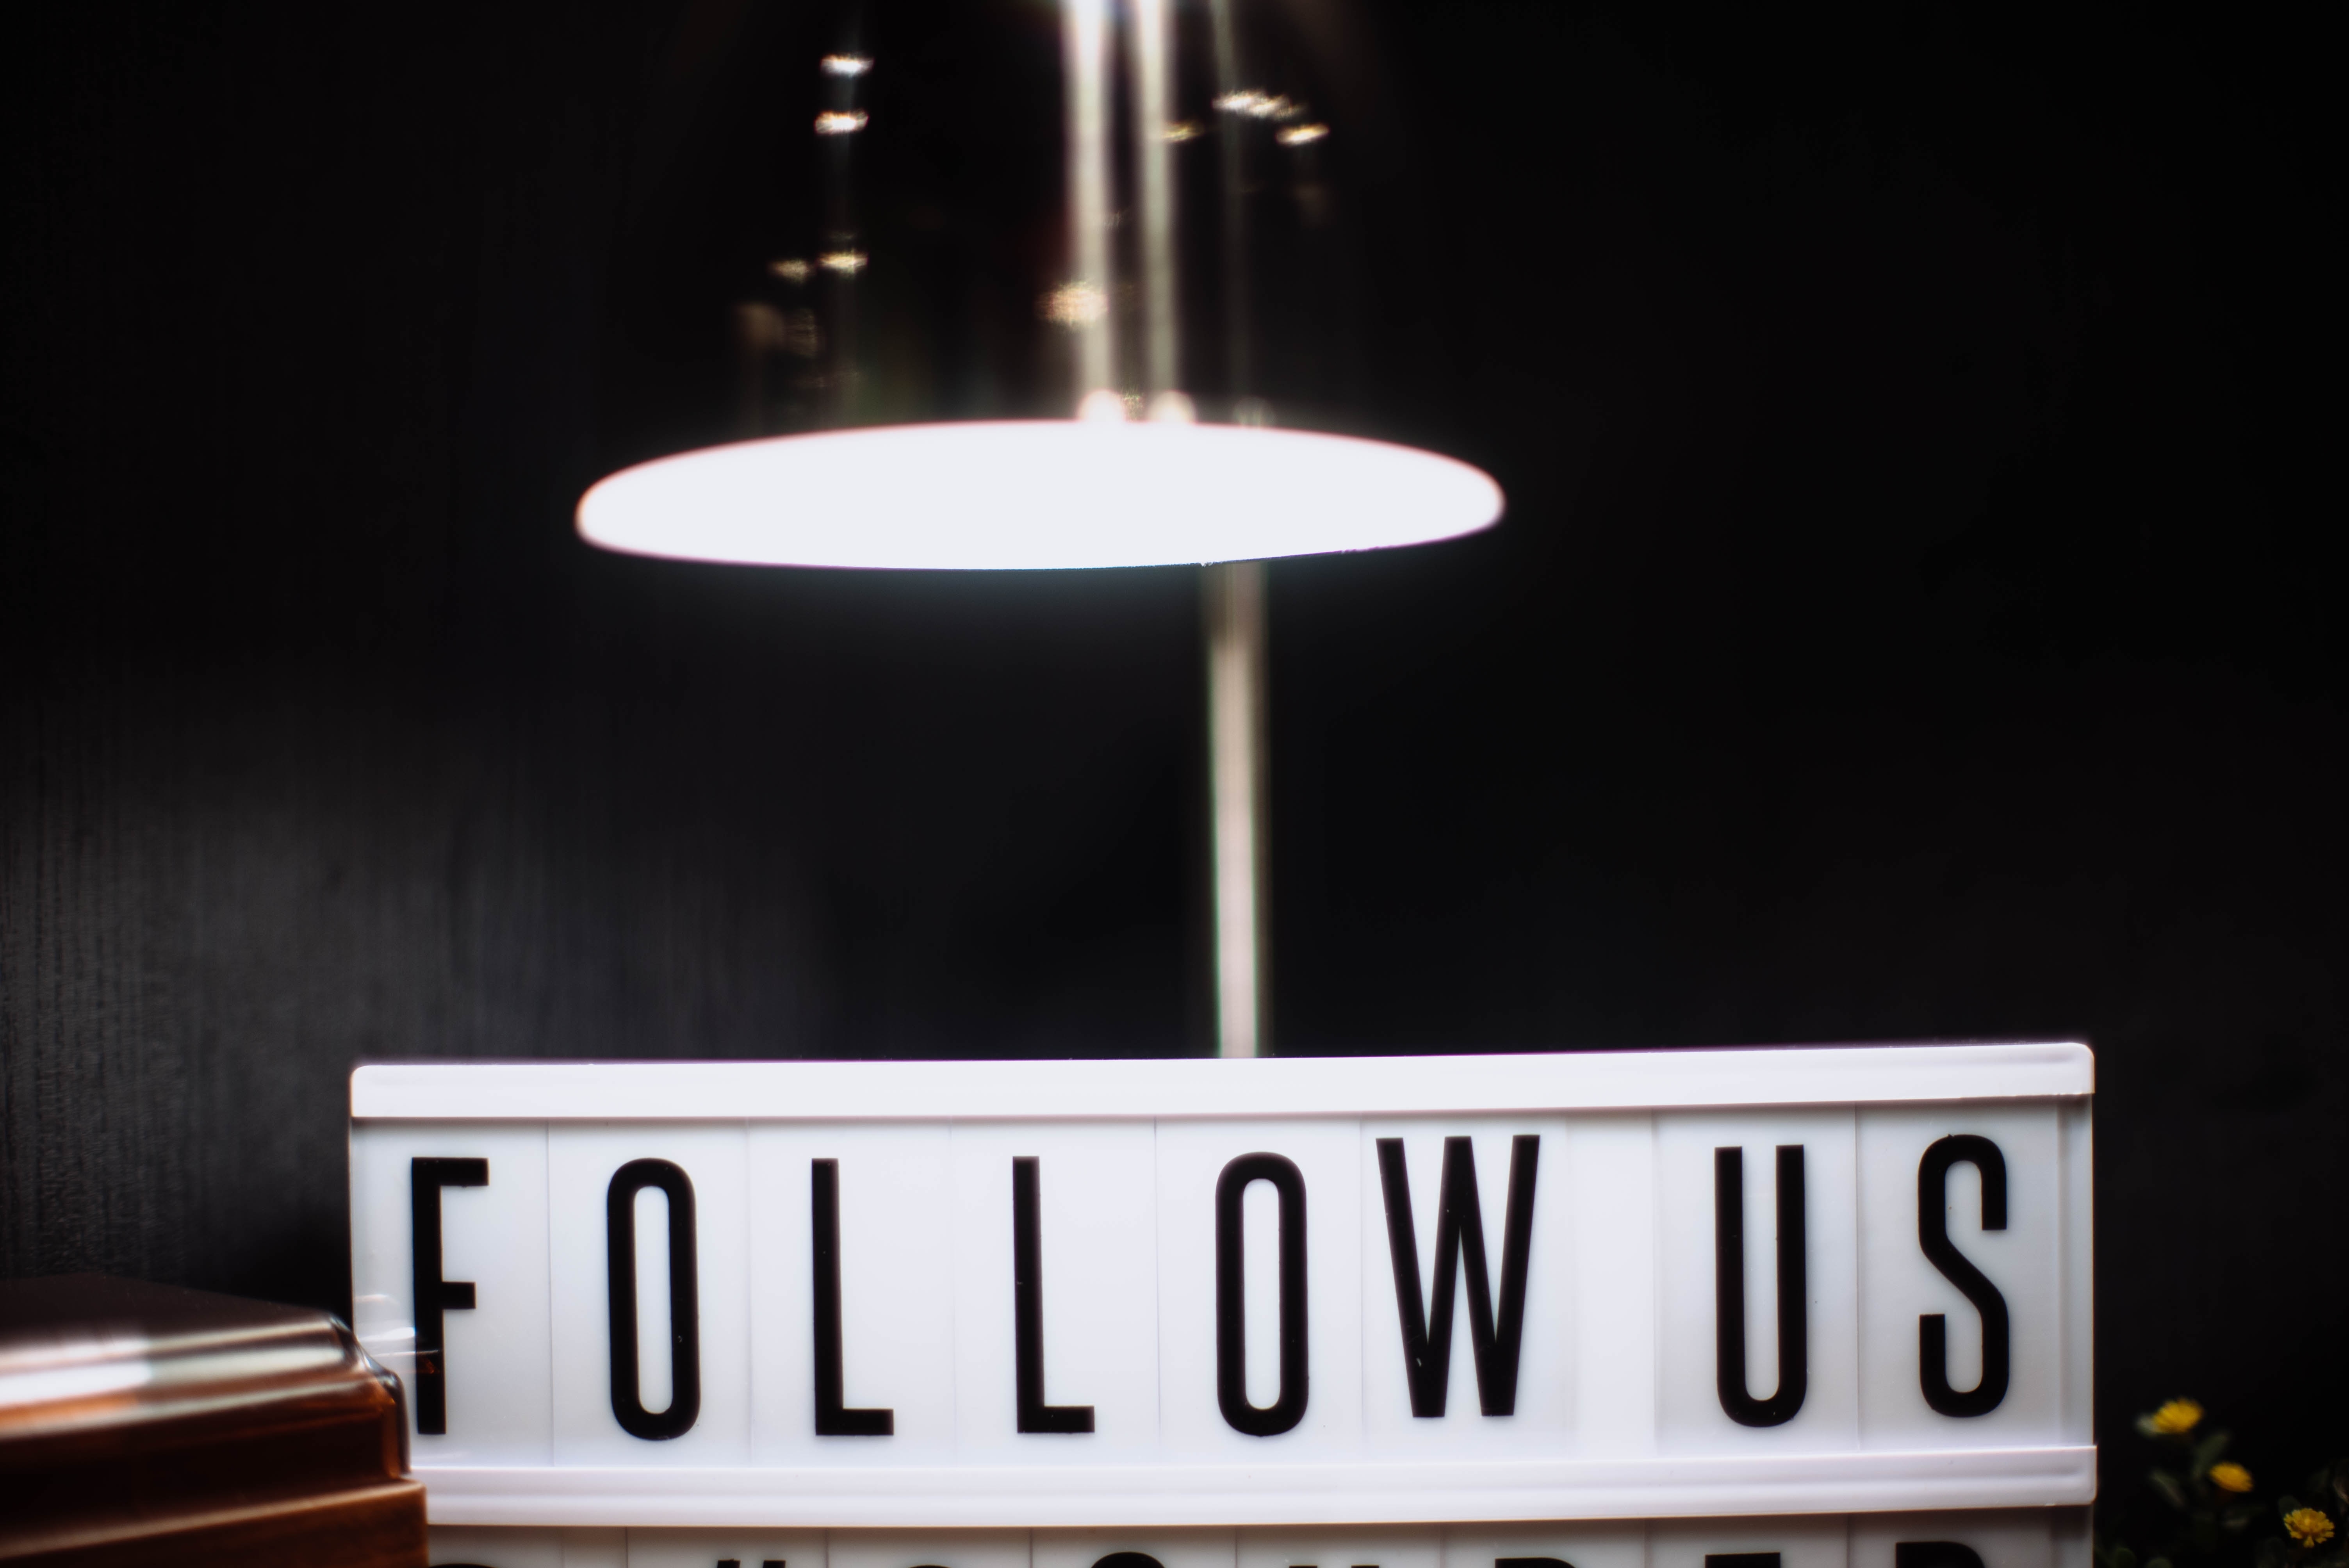 Follow us sign